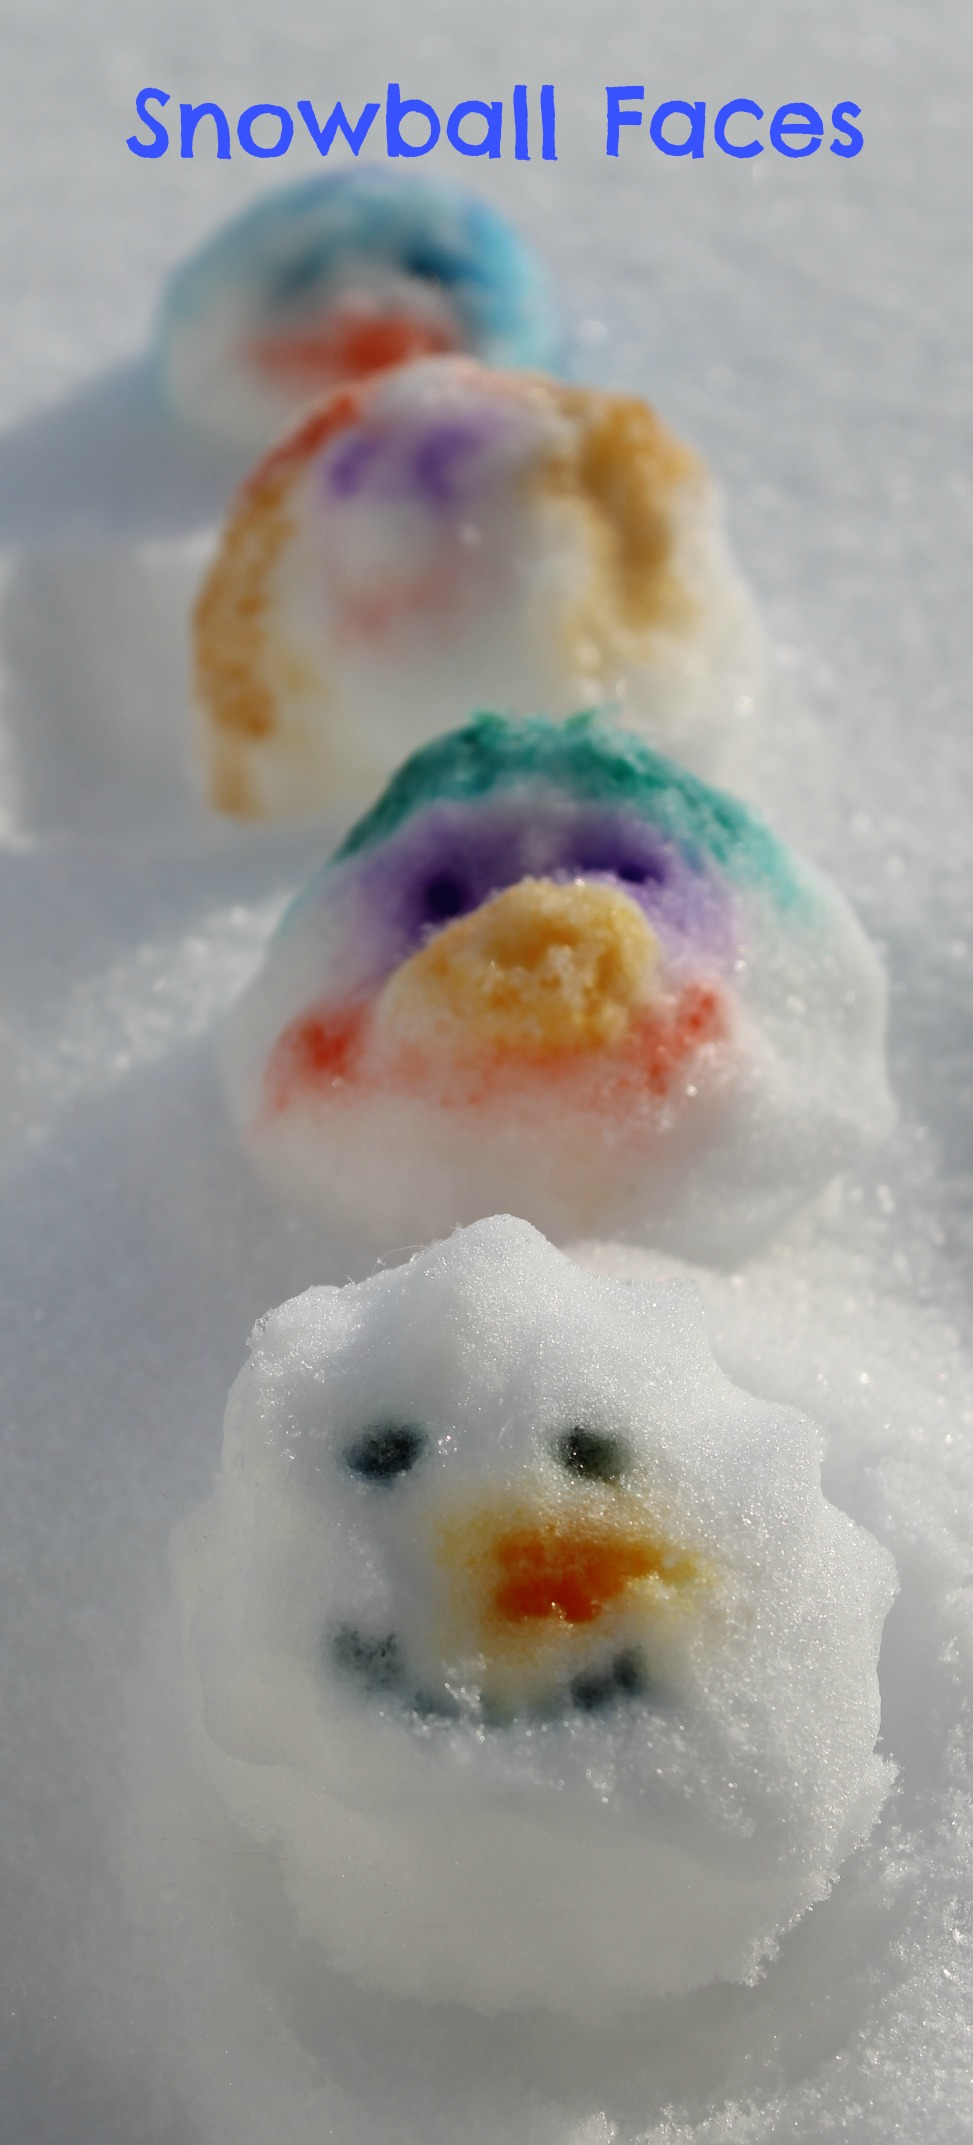 http://www.fantasticfunandlearning.com/indoor-snow-activity.html